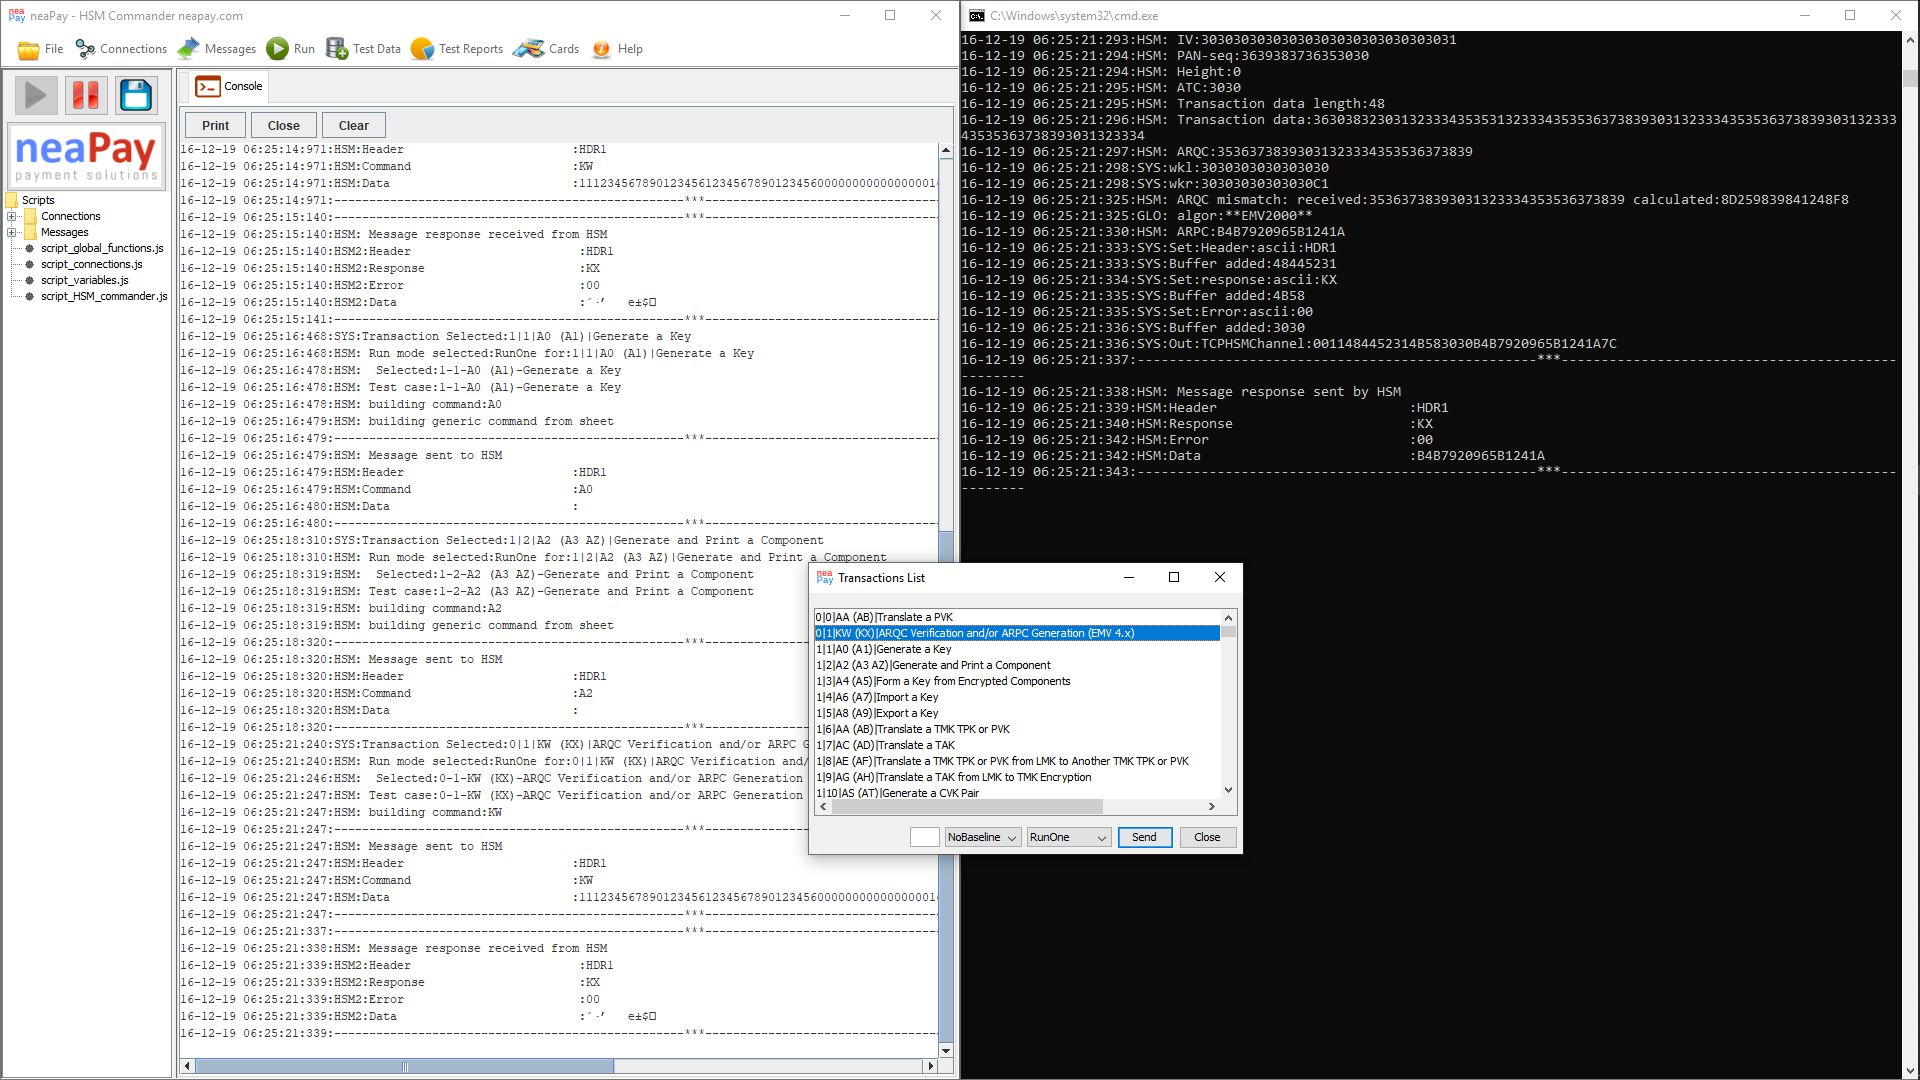 Deploy the neaPay HSM simulator in a test environment